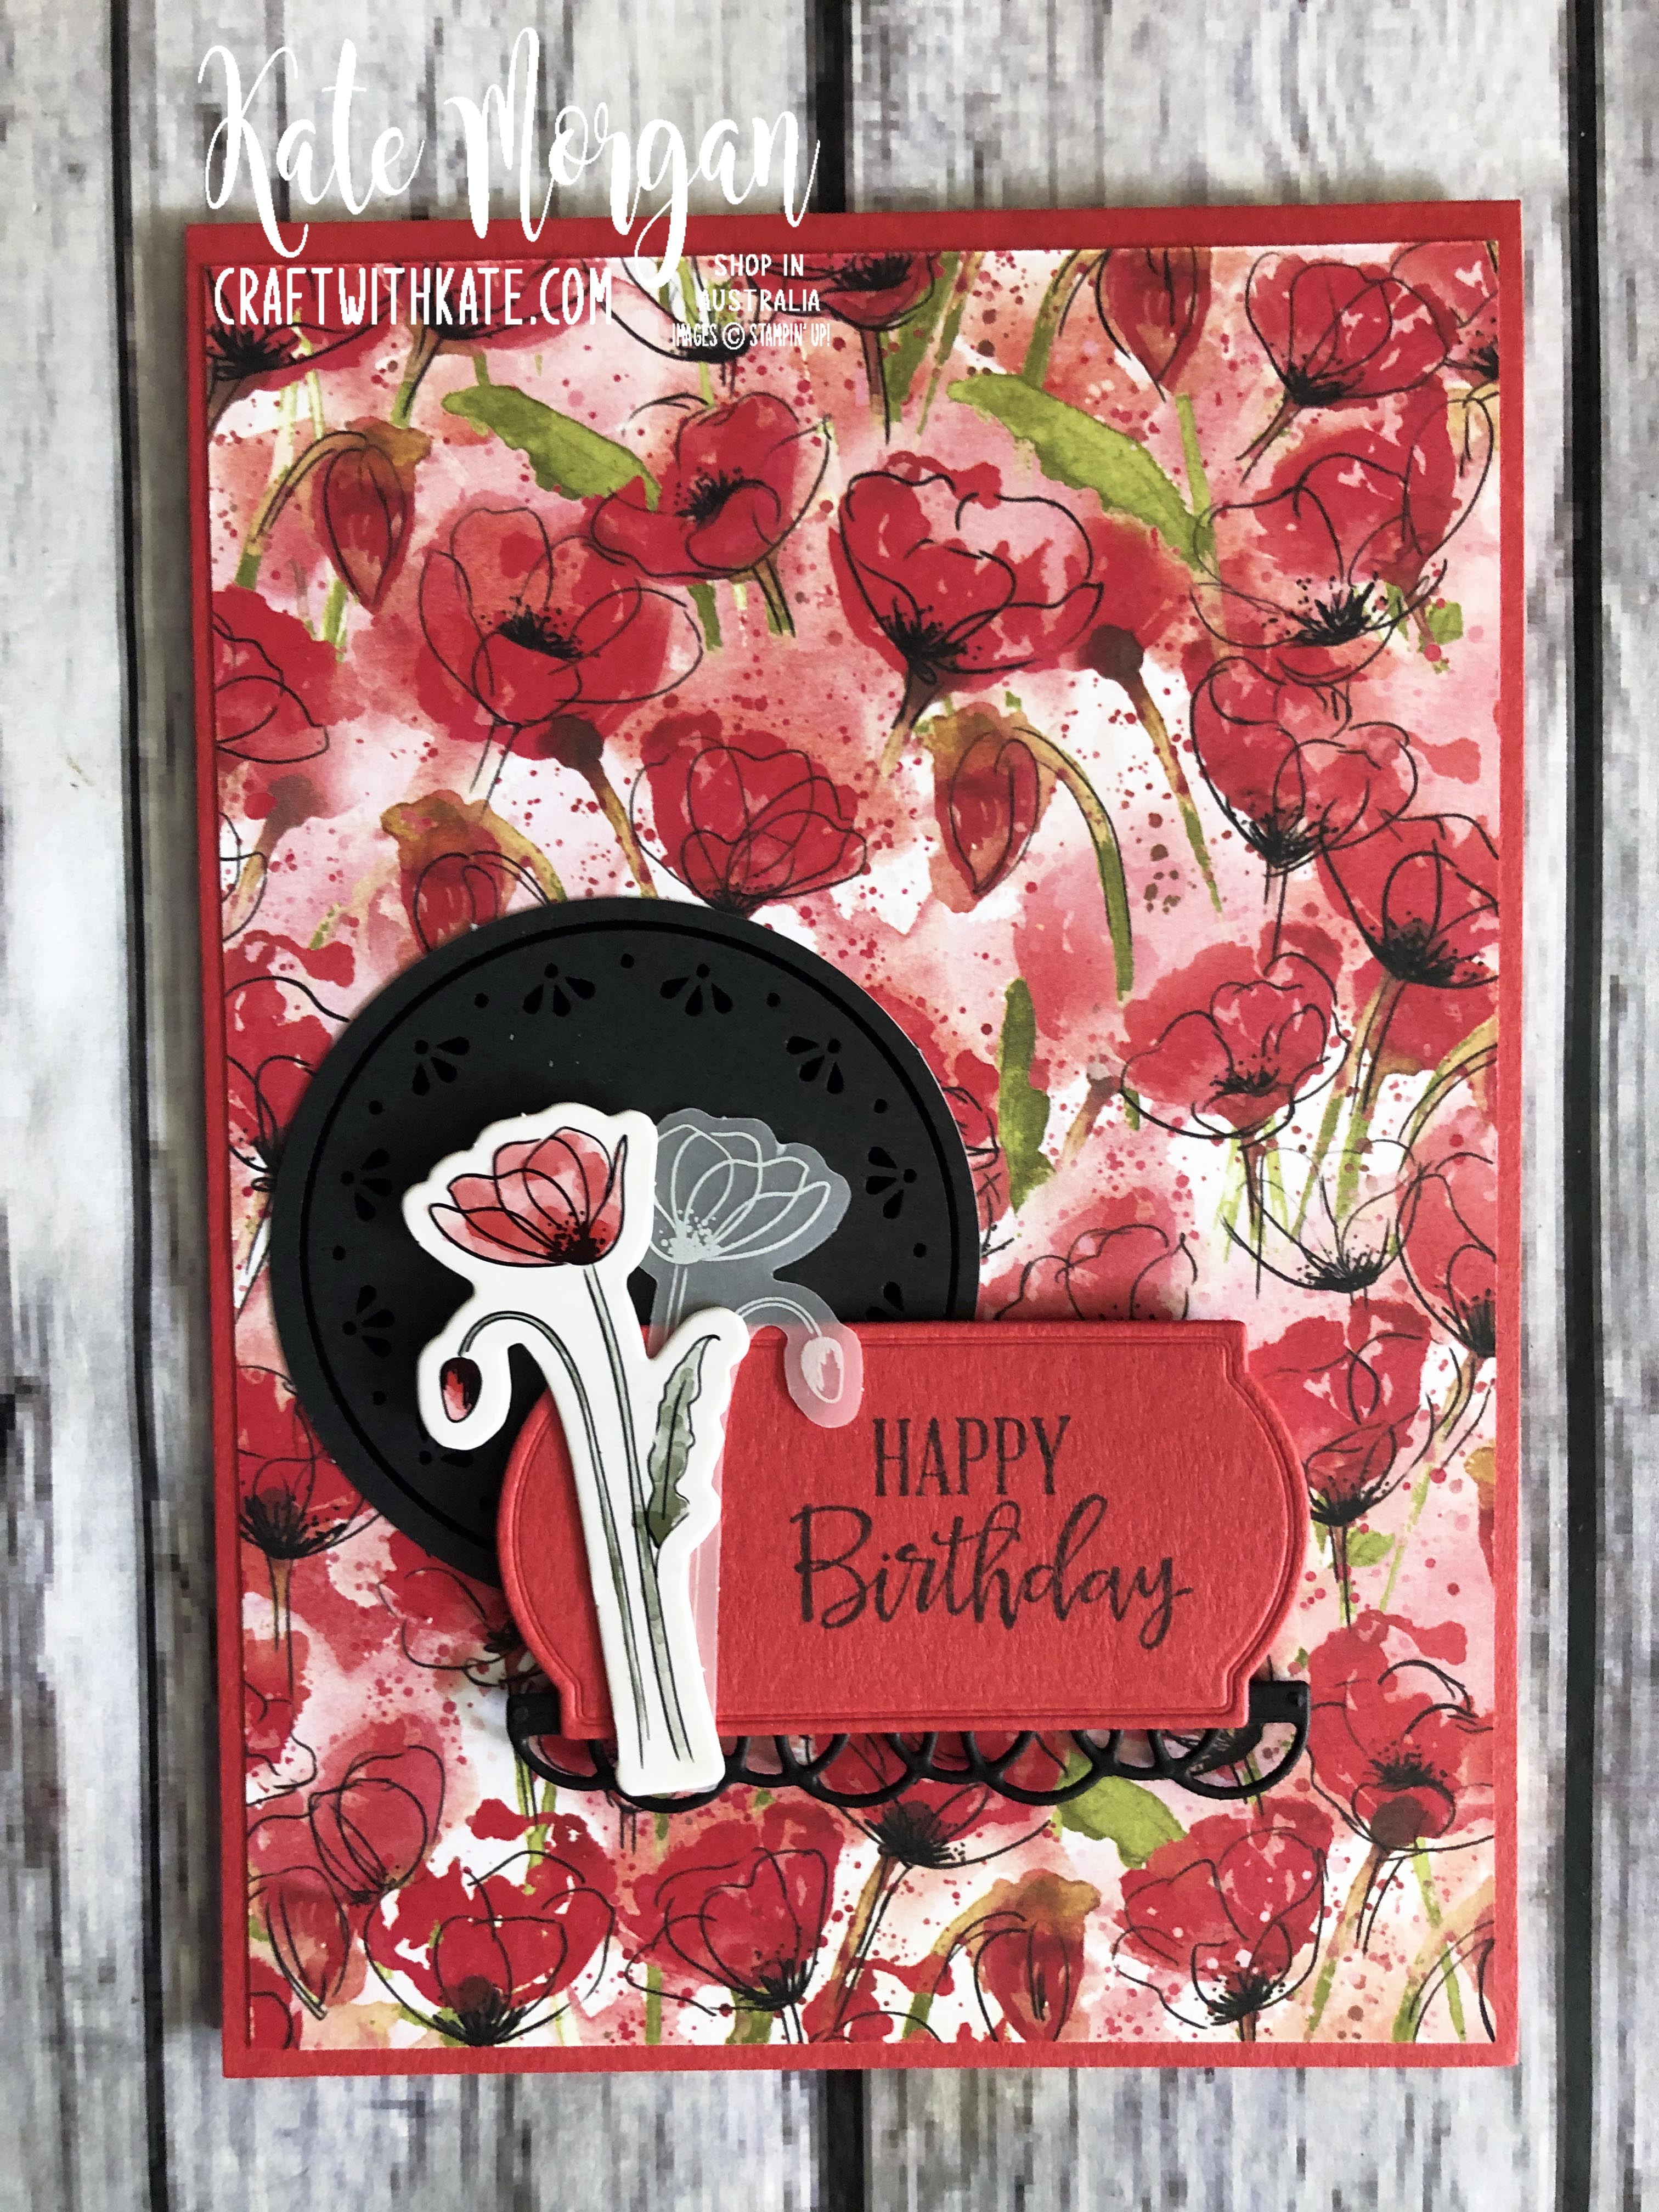 Peaceful Poppies Suite Stampin Up Mini 2020 by Kate Morgan, Australia.